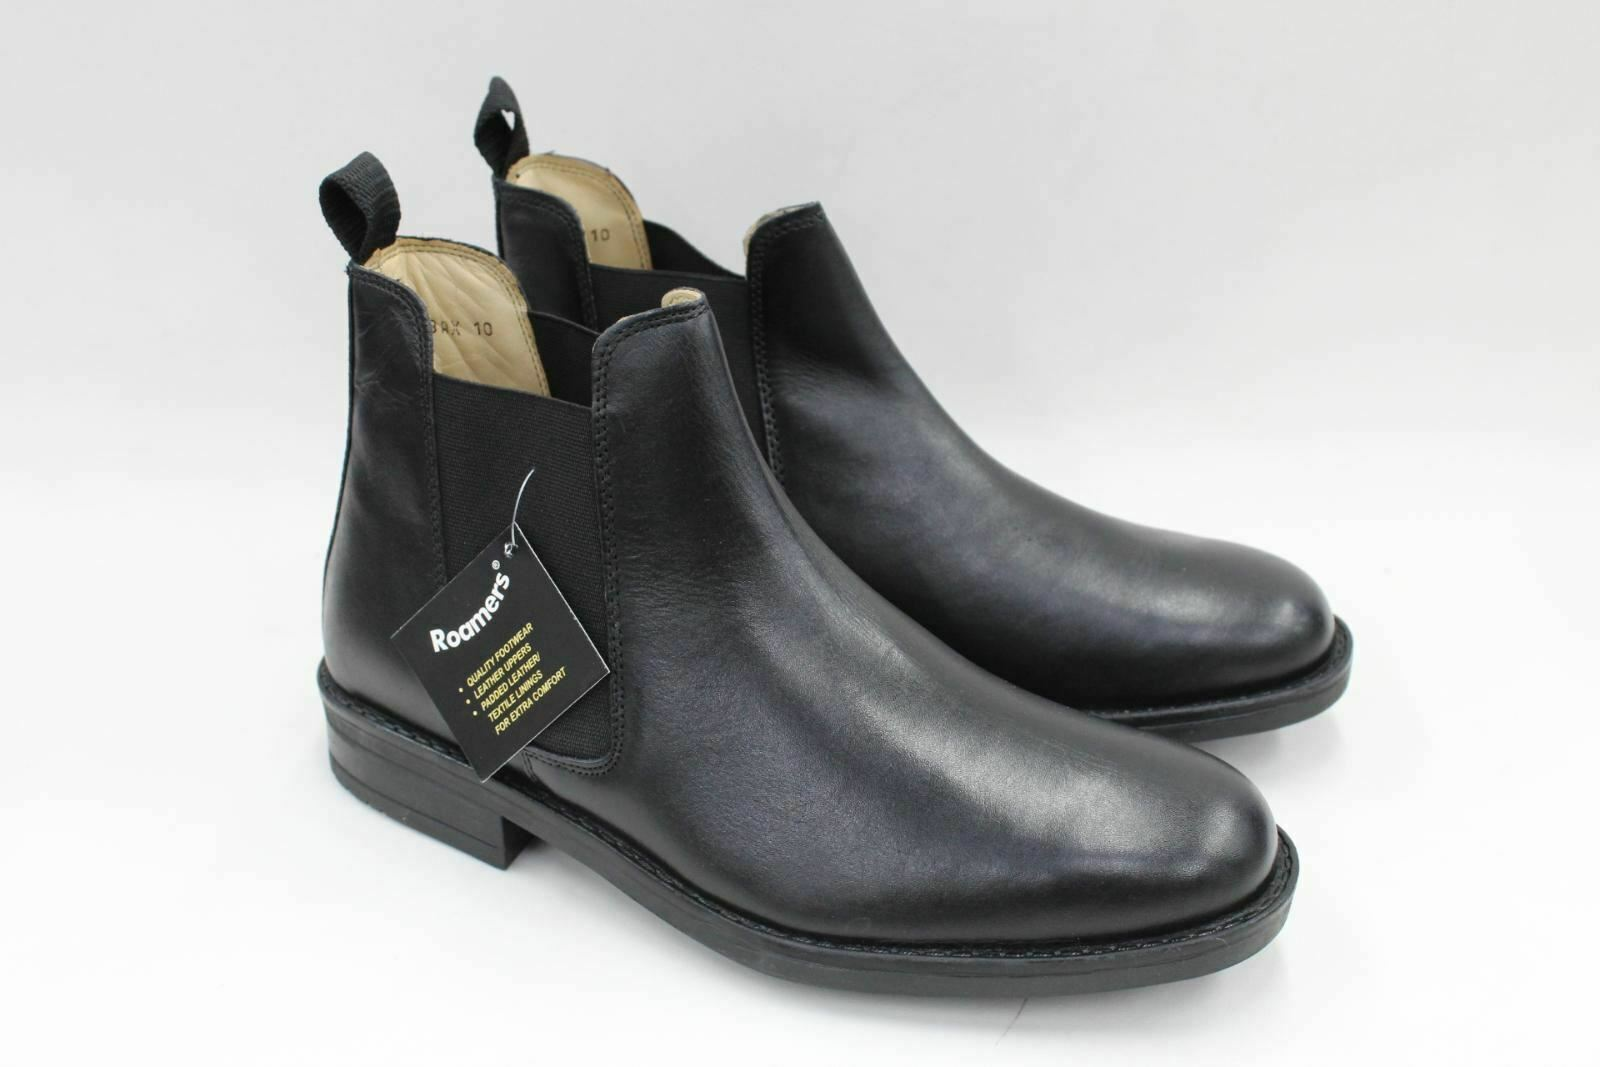 ROAMERS Men's Black Leather Pull-On Twin Gusset Chelsea Ankle Boots UK10 BNIB